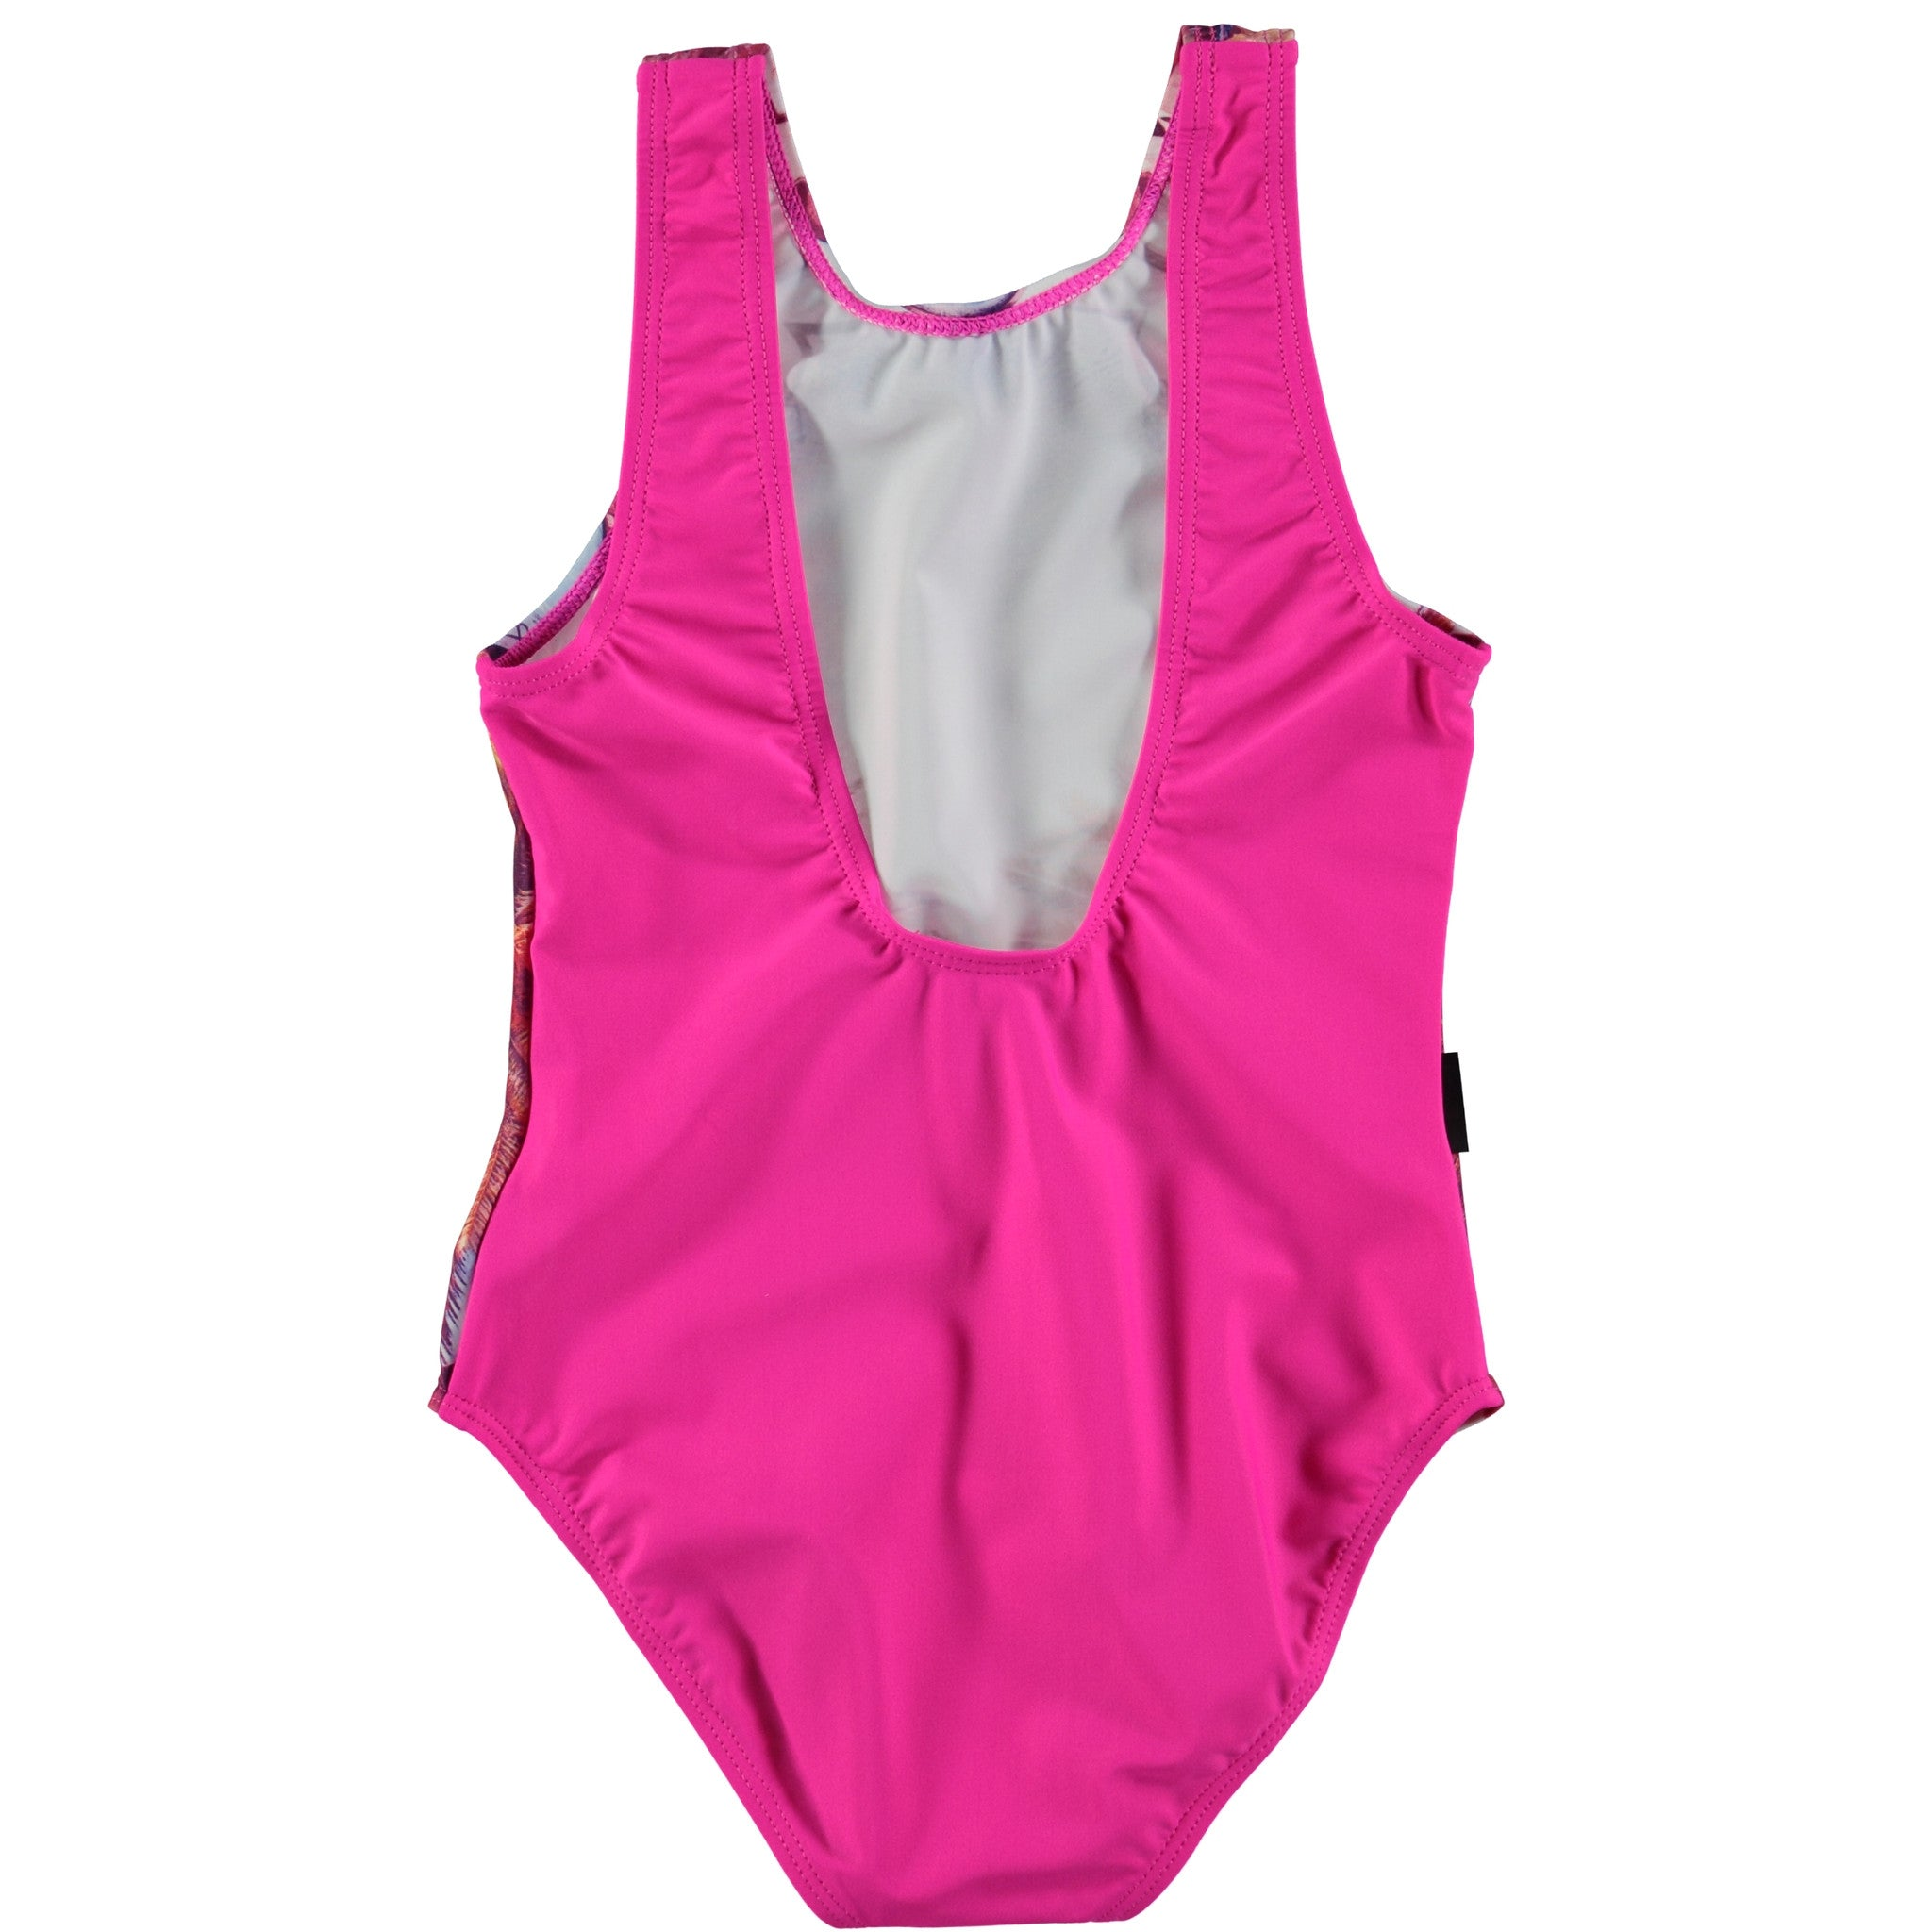 Molo Pink Swimming Swimsuit